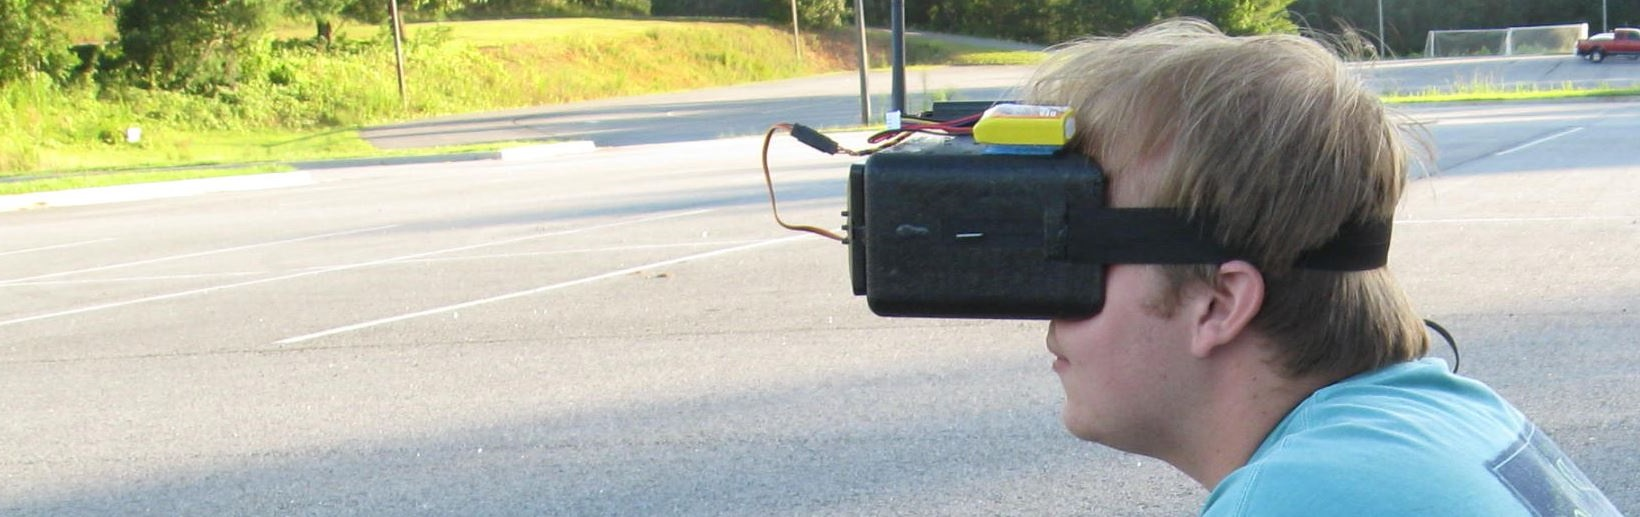 Pilot flying FPV with a headset